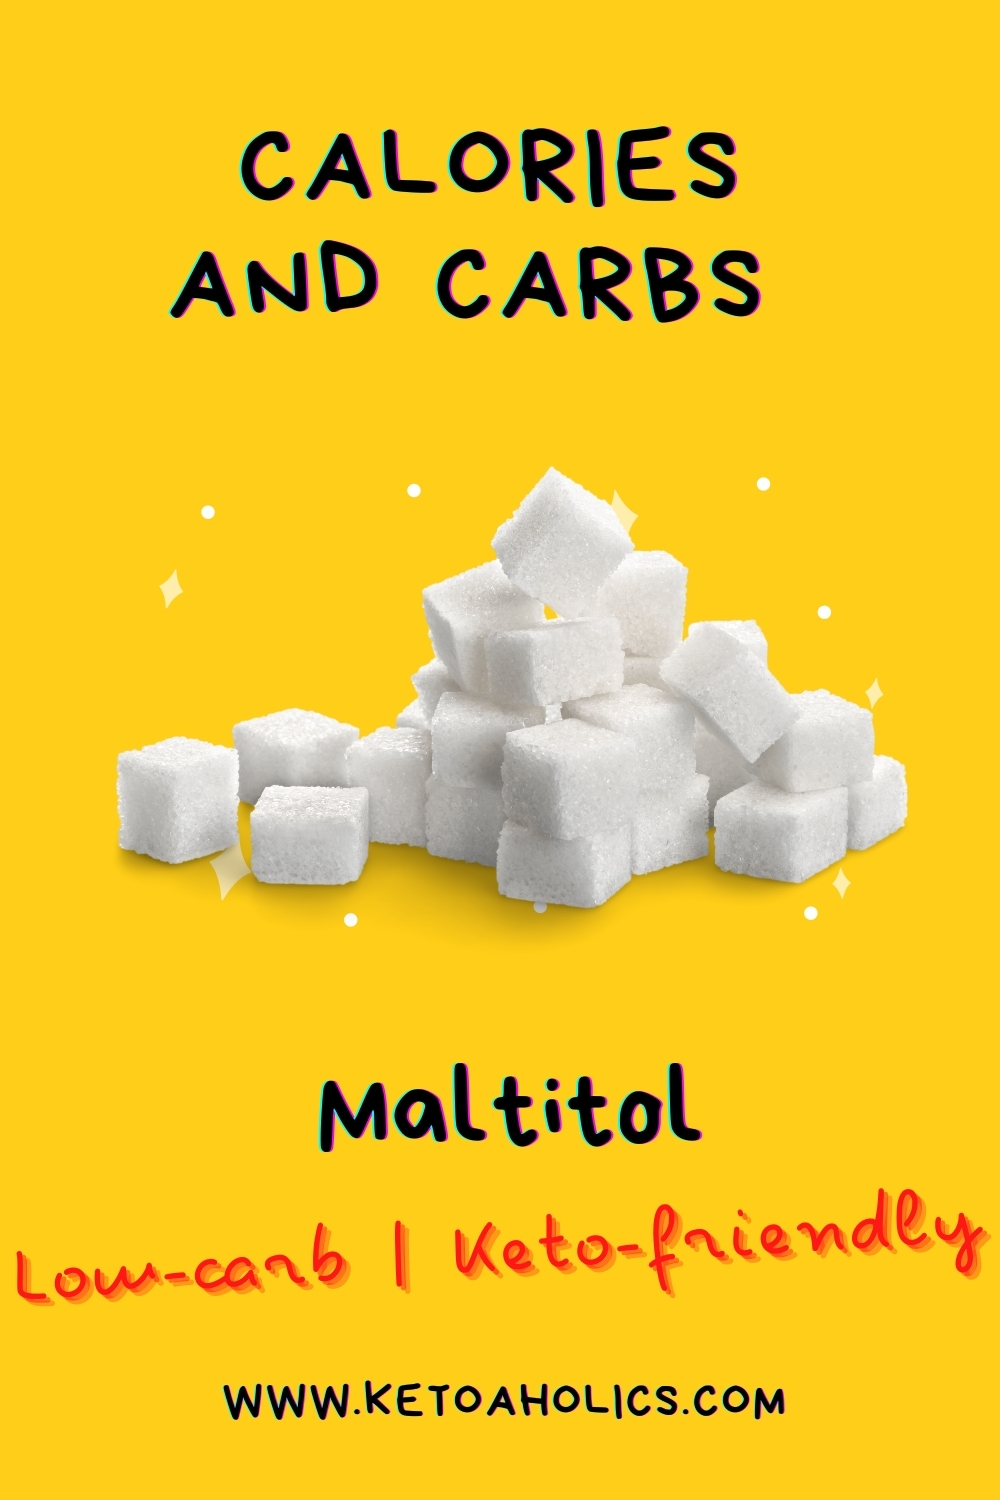 image of Maltitol Calories Is Maltitol Good Low-carb Sweetener for Keto